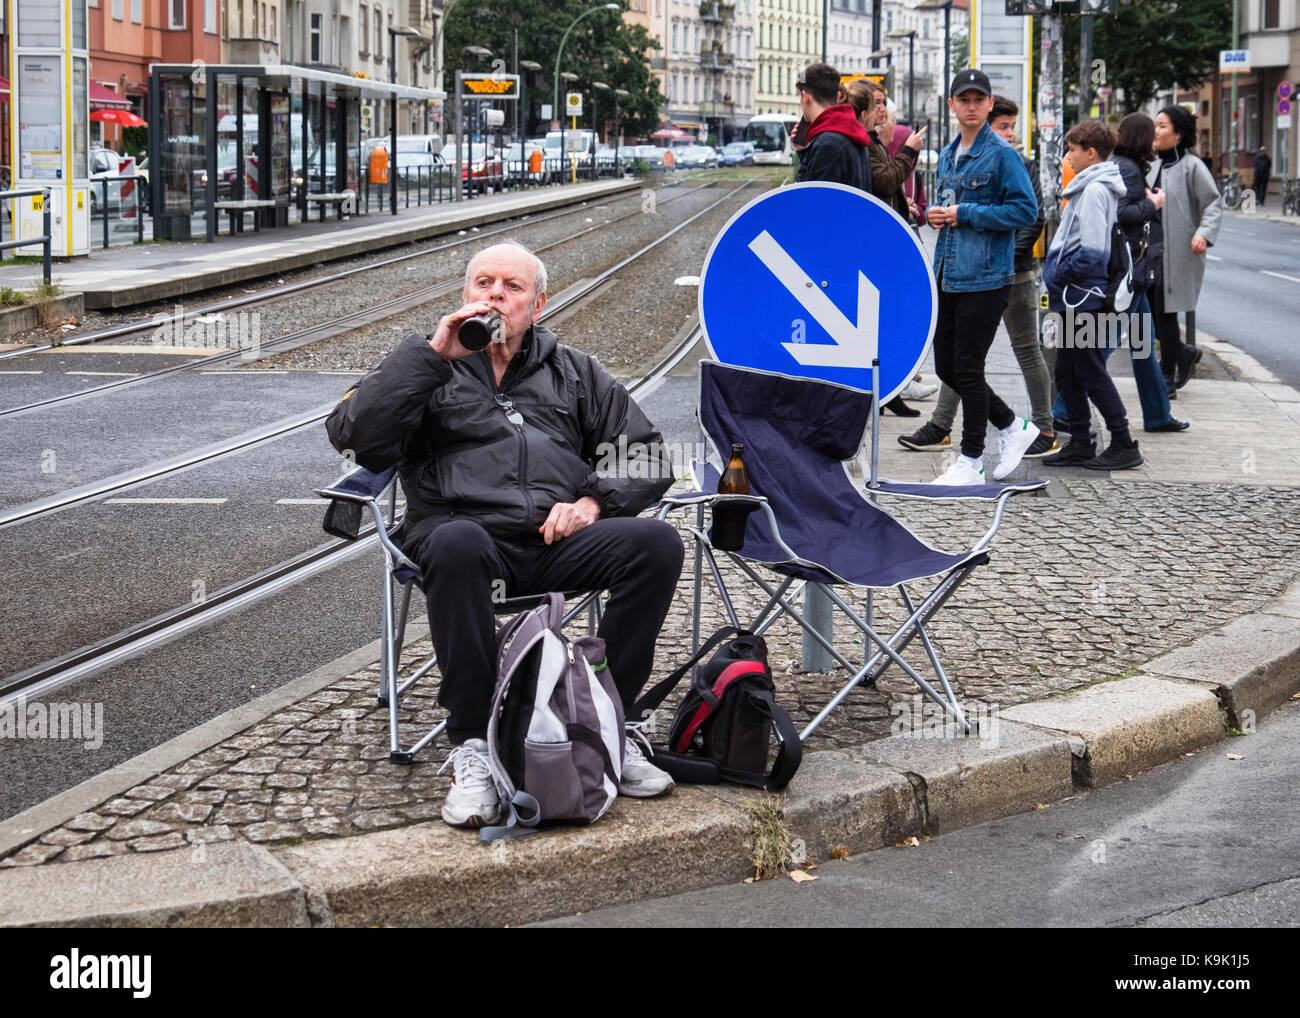 Berlin Germany. 23 September 2017, Senior man spectator waiting for Annual In Line Skating Marathon. In line skaters pass through RosenthalePlatz as they compete in the annual roller skating event. Eden Breitz/Alamy Live News Stock Photo